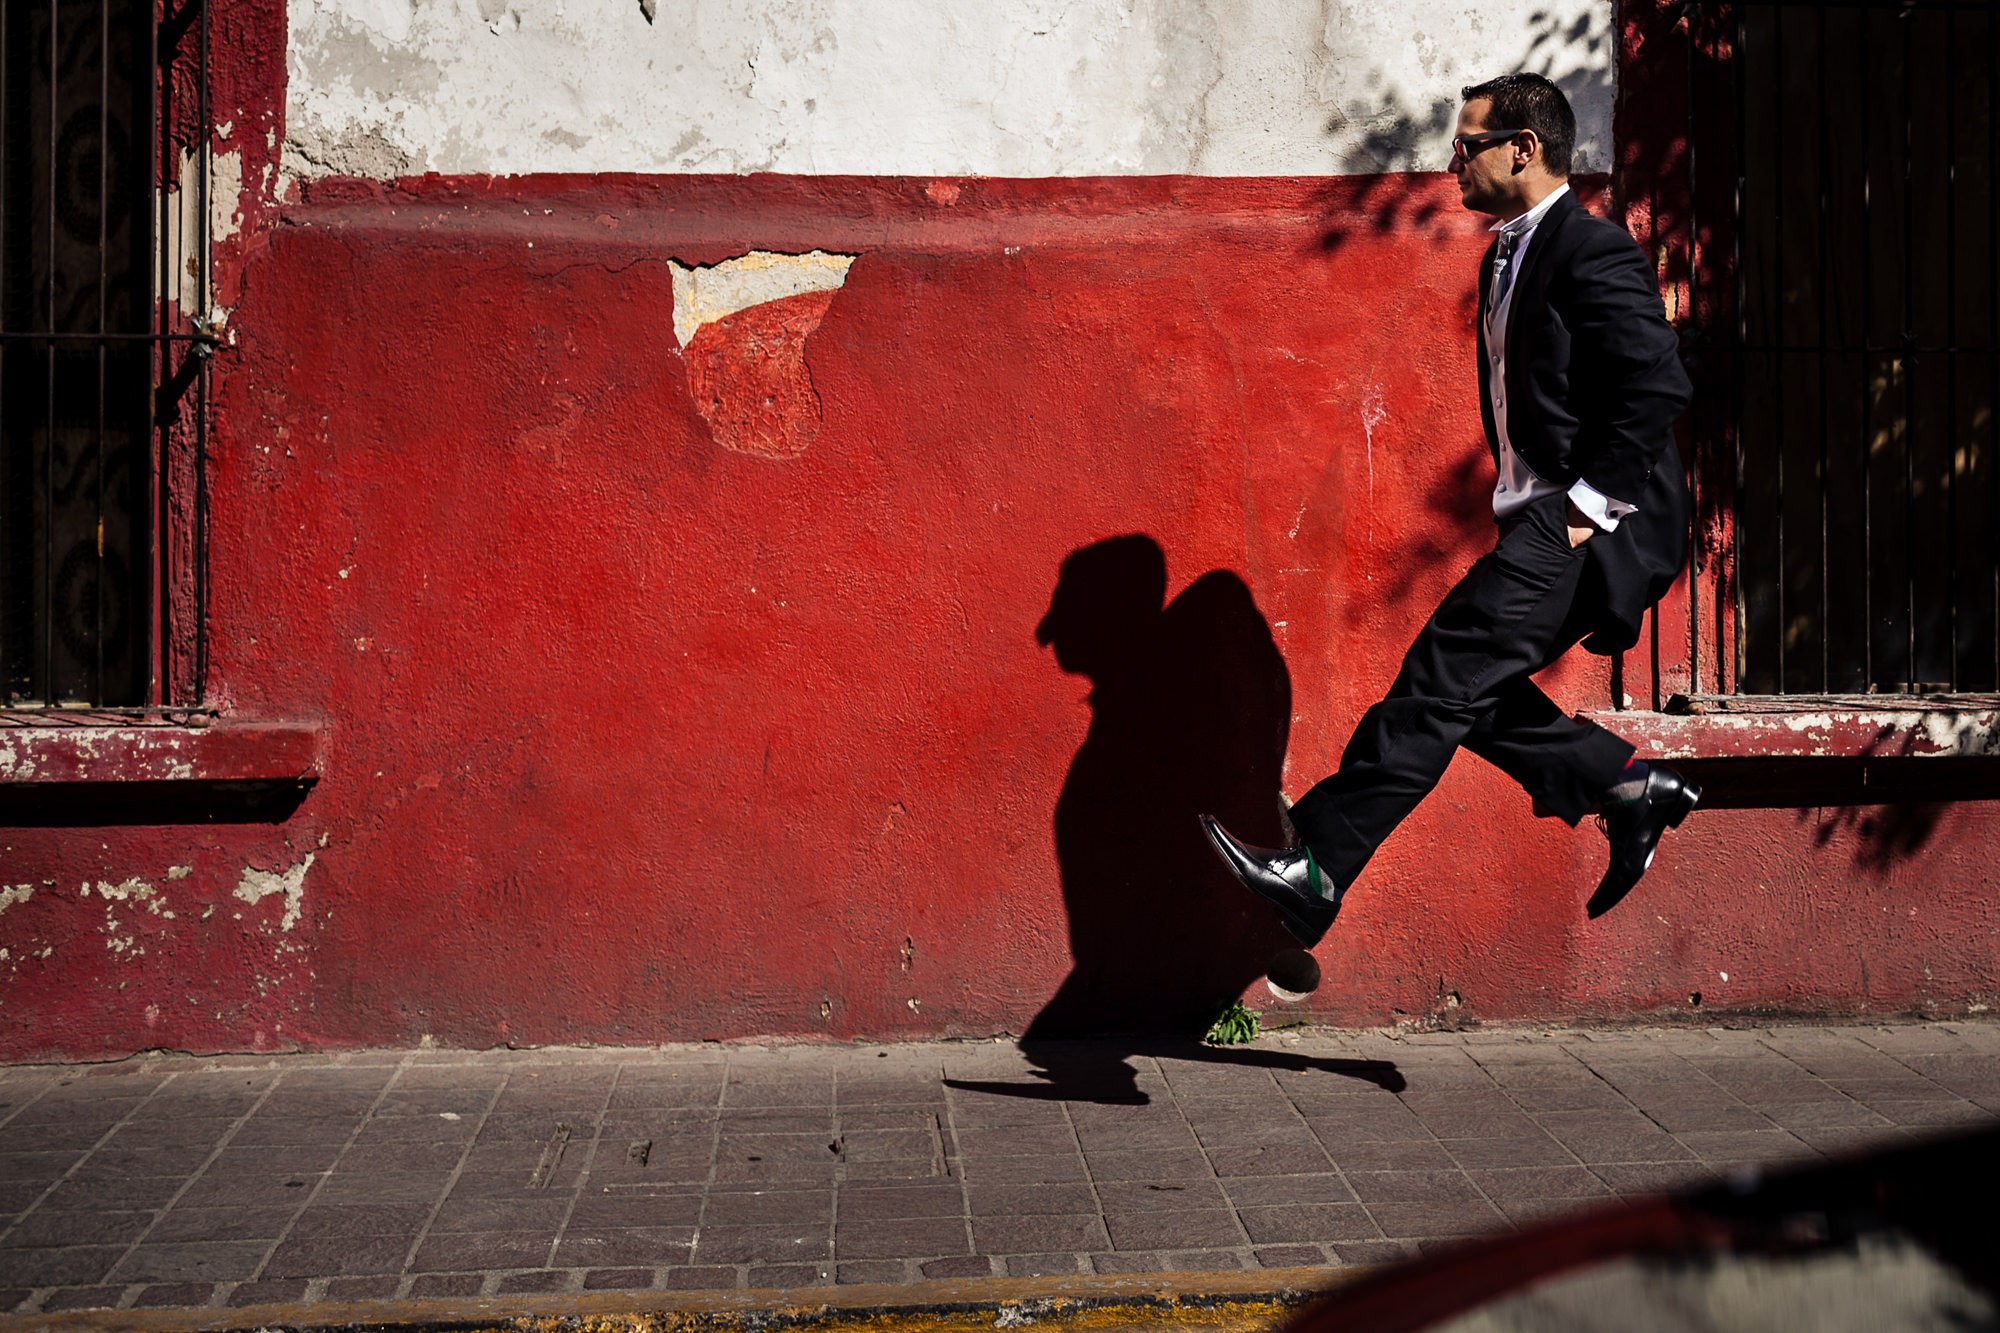 Groom in mid-air with shadow - photo by Jag Studios